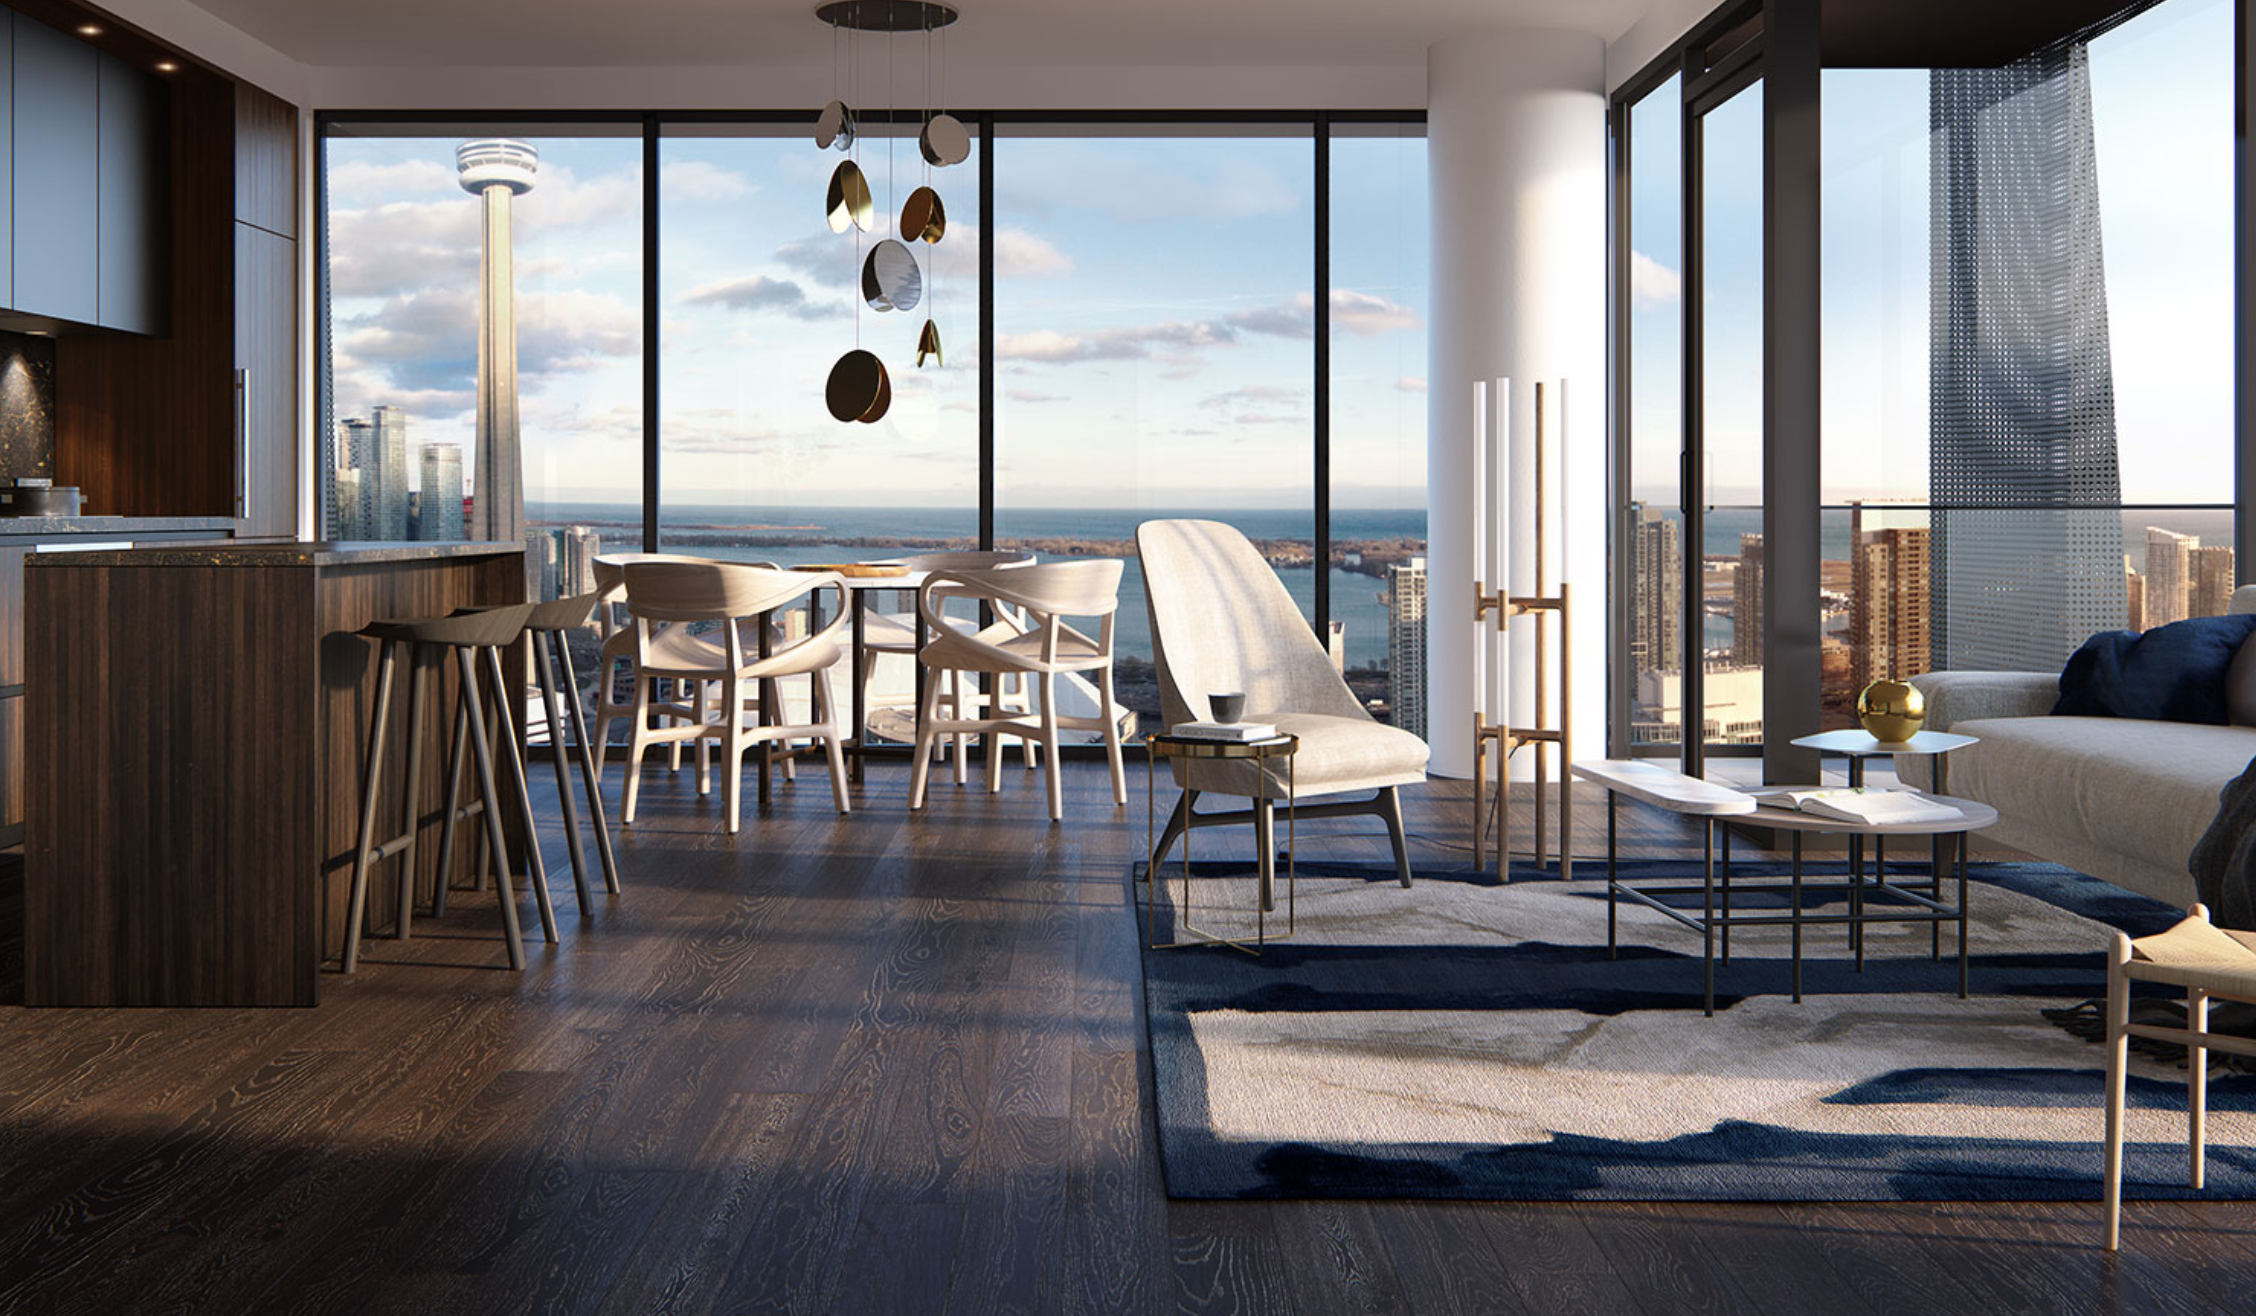 Developers of Toronto's Nobu Residences hope to break ground next year. Summer sales demand will determine the project's success.